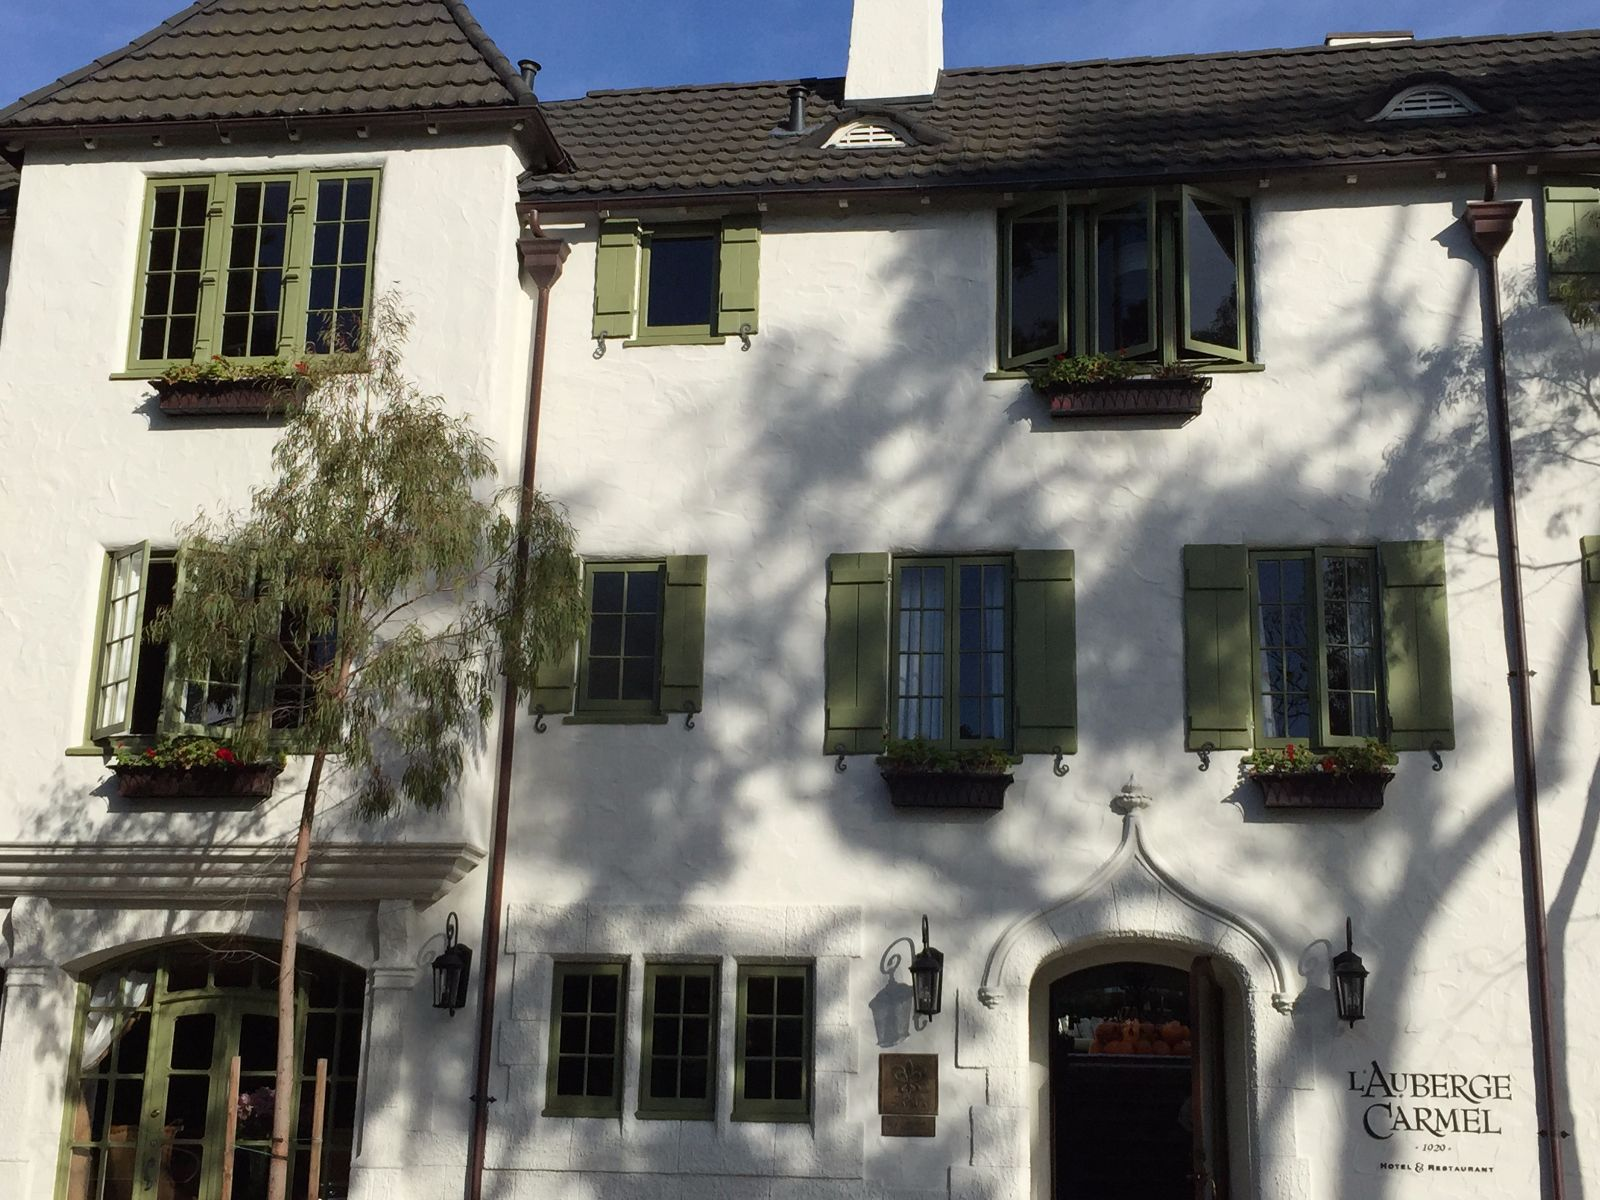 L'Auberge Hotel Carmel, Historic Relais & Chateau Boutique Inn at Carmel by the Sea, CA 93921x